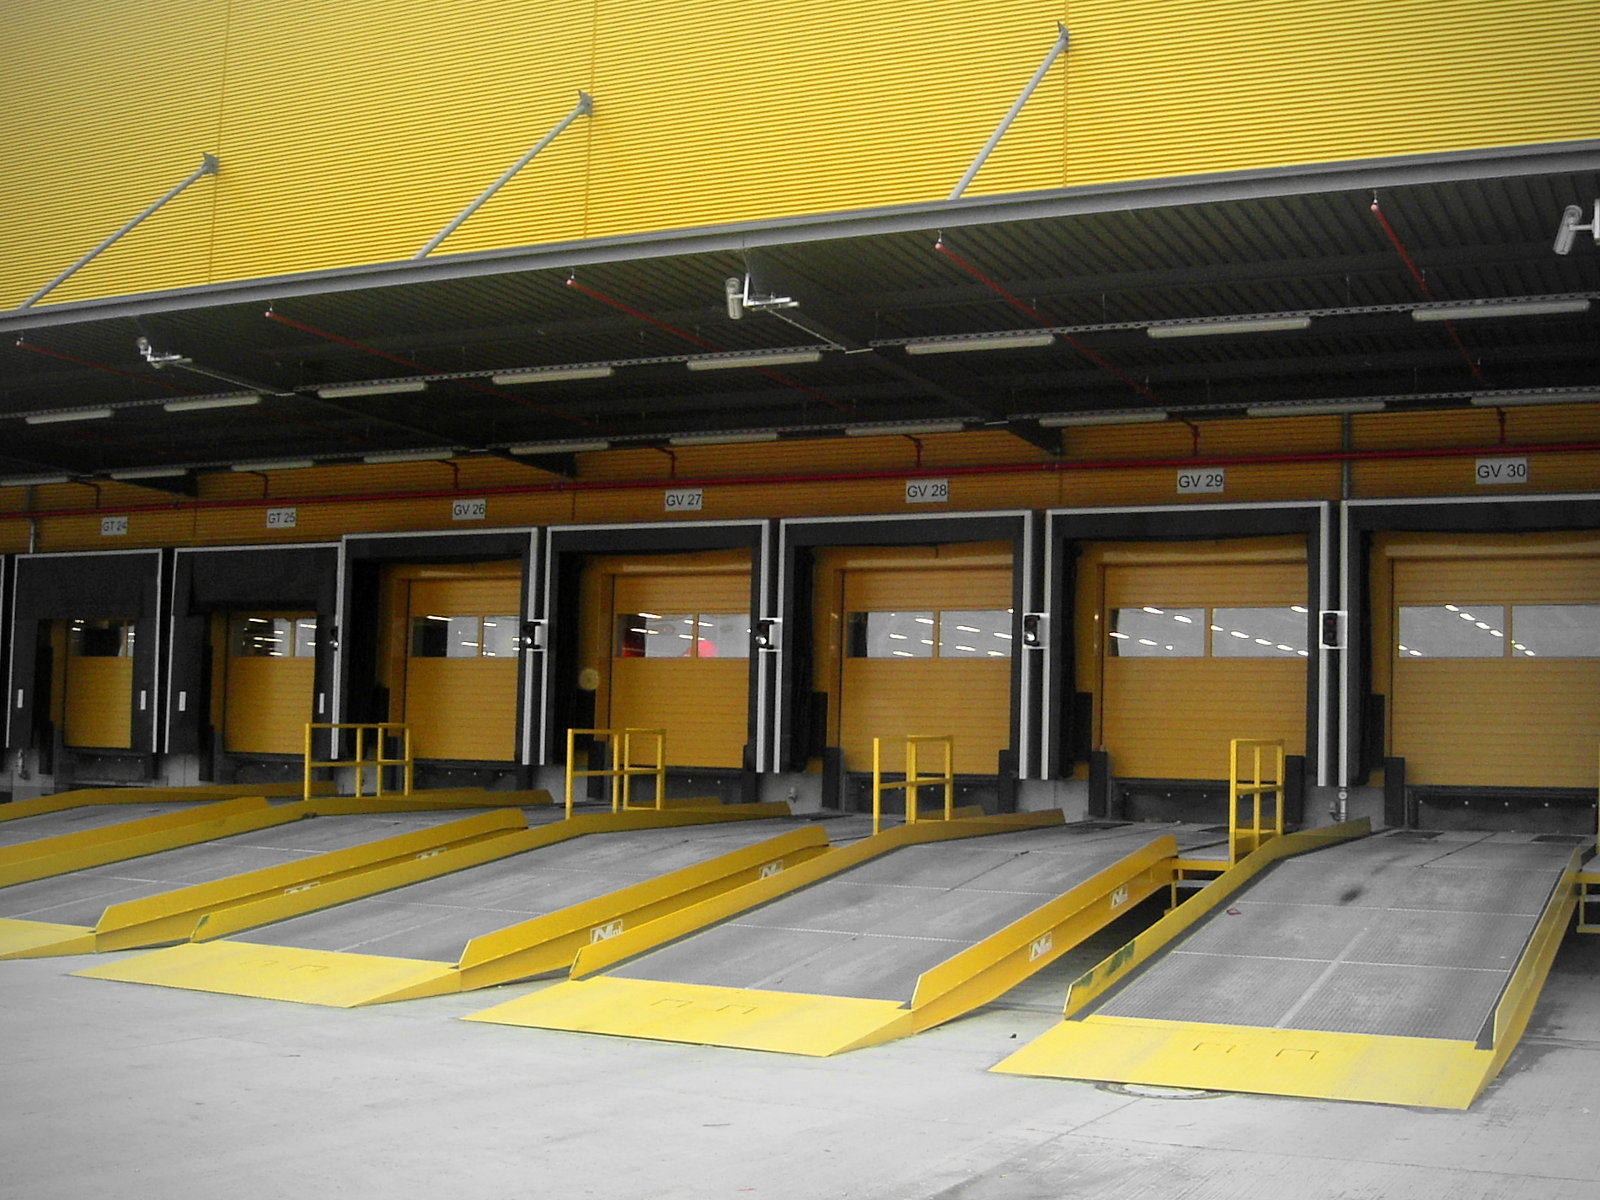 Deutsche Post AG - mobile loading platforms or yardramps